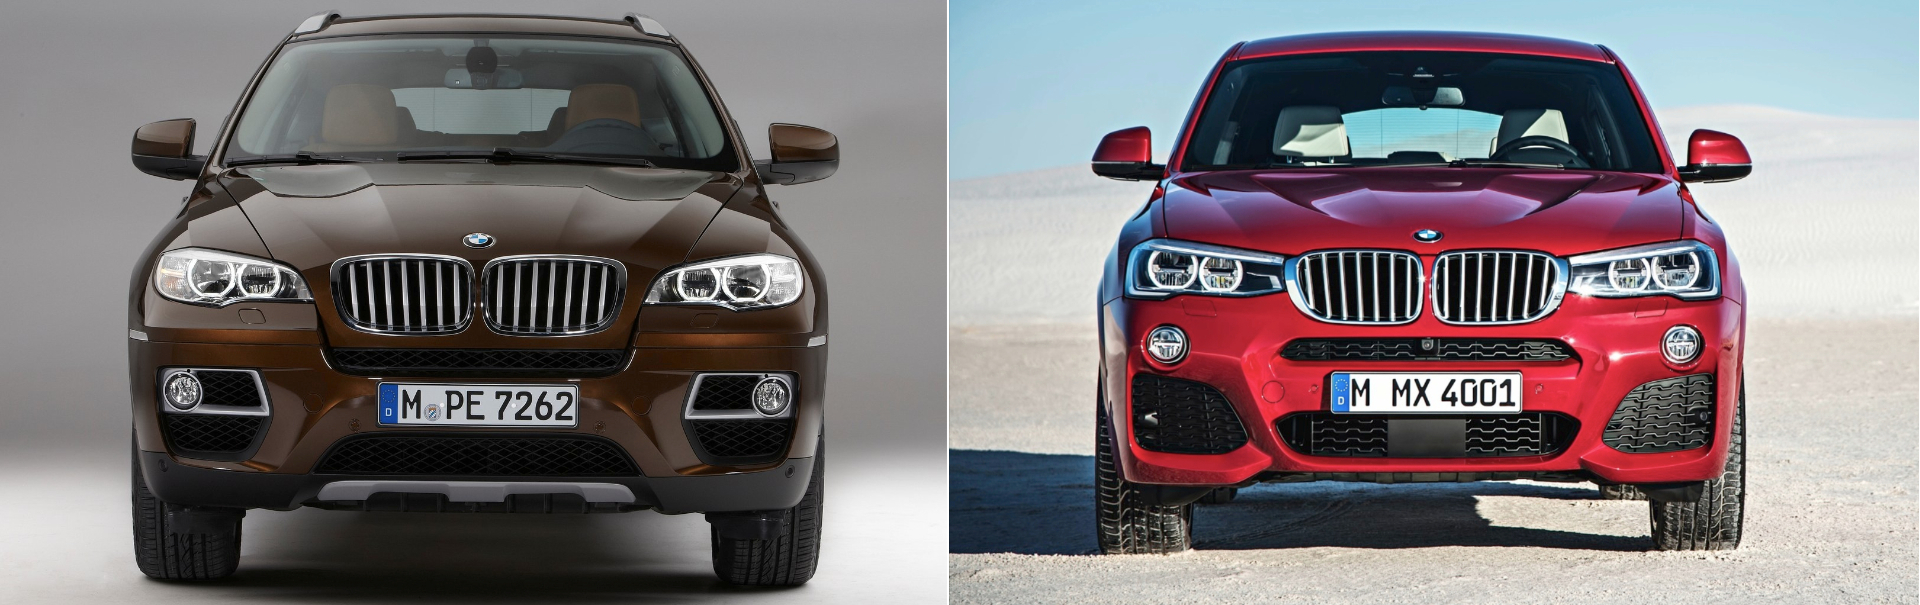 BMW X6 BMW X4 comparativa frontal